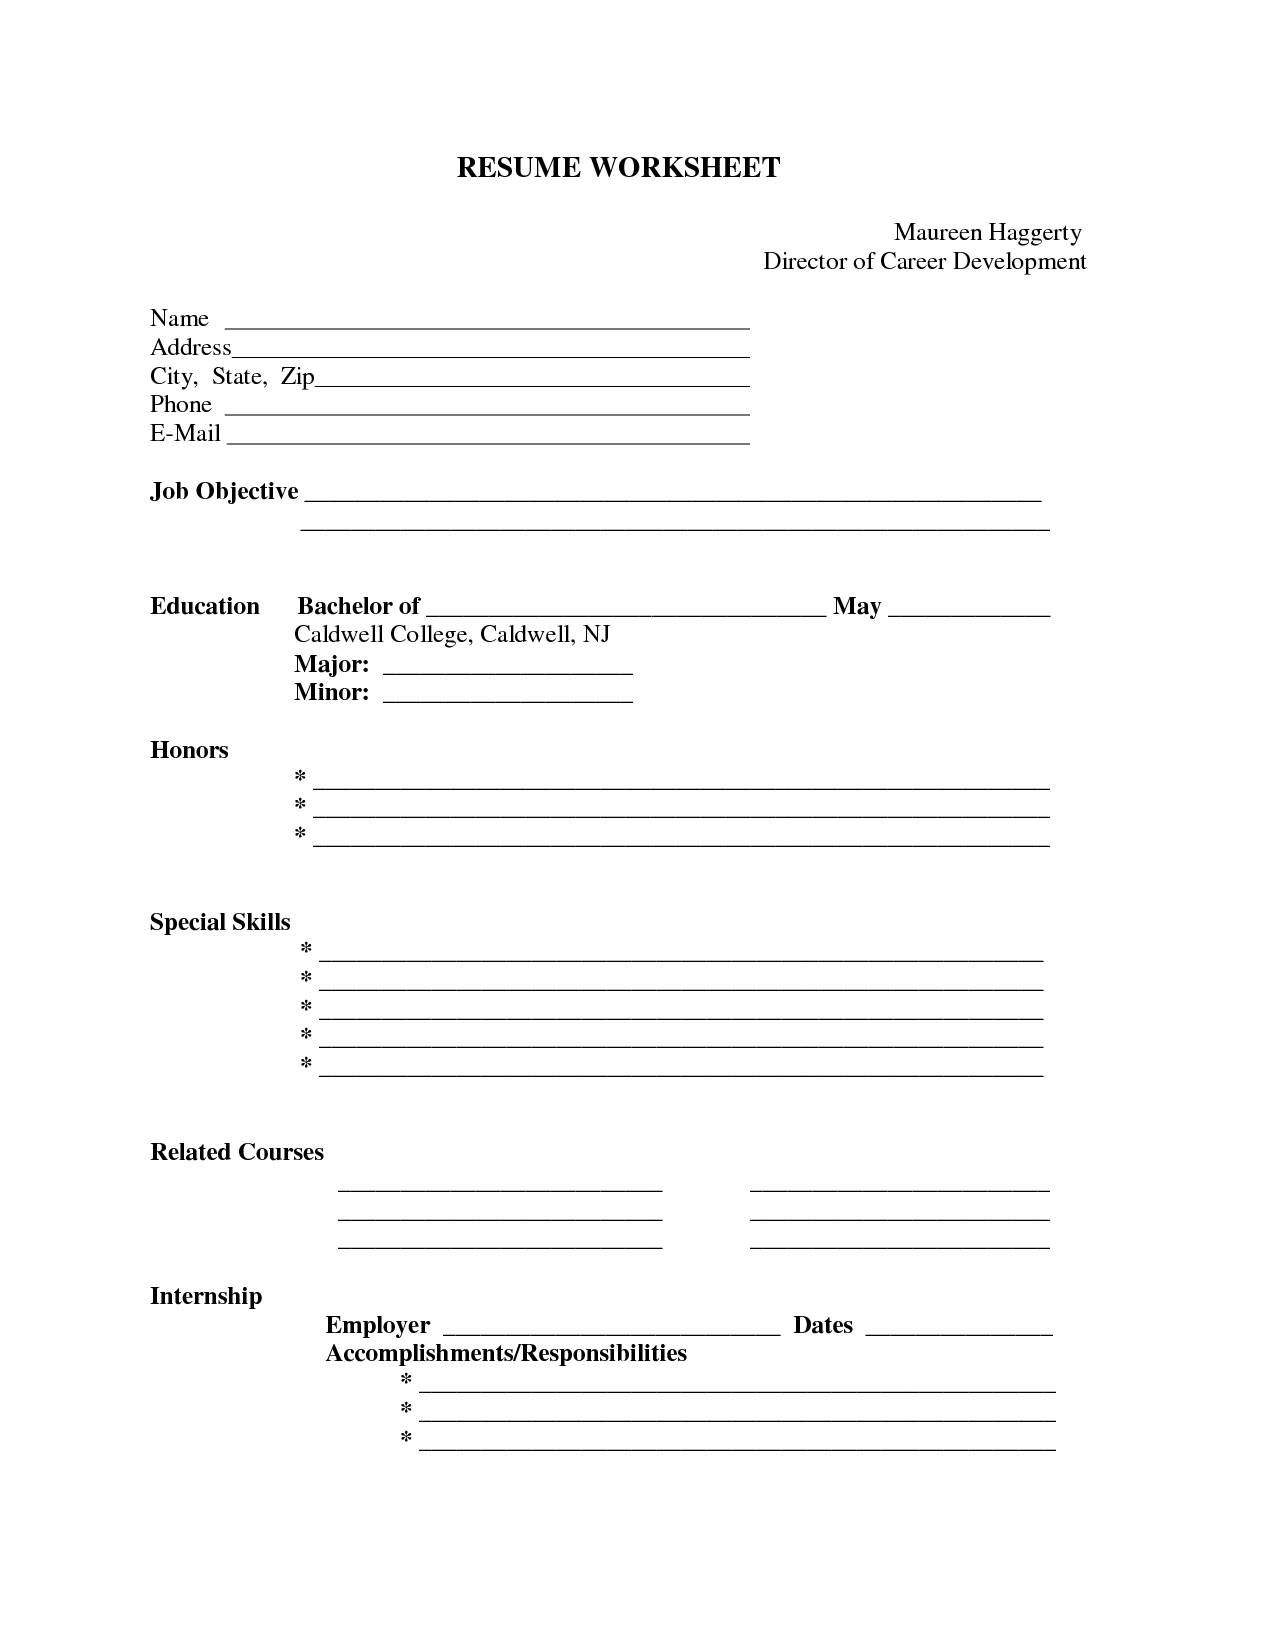 Resume Blank Format Pin By Resumejob On Resume Job Resume Template Free Free